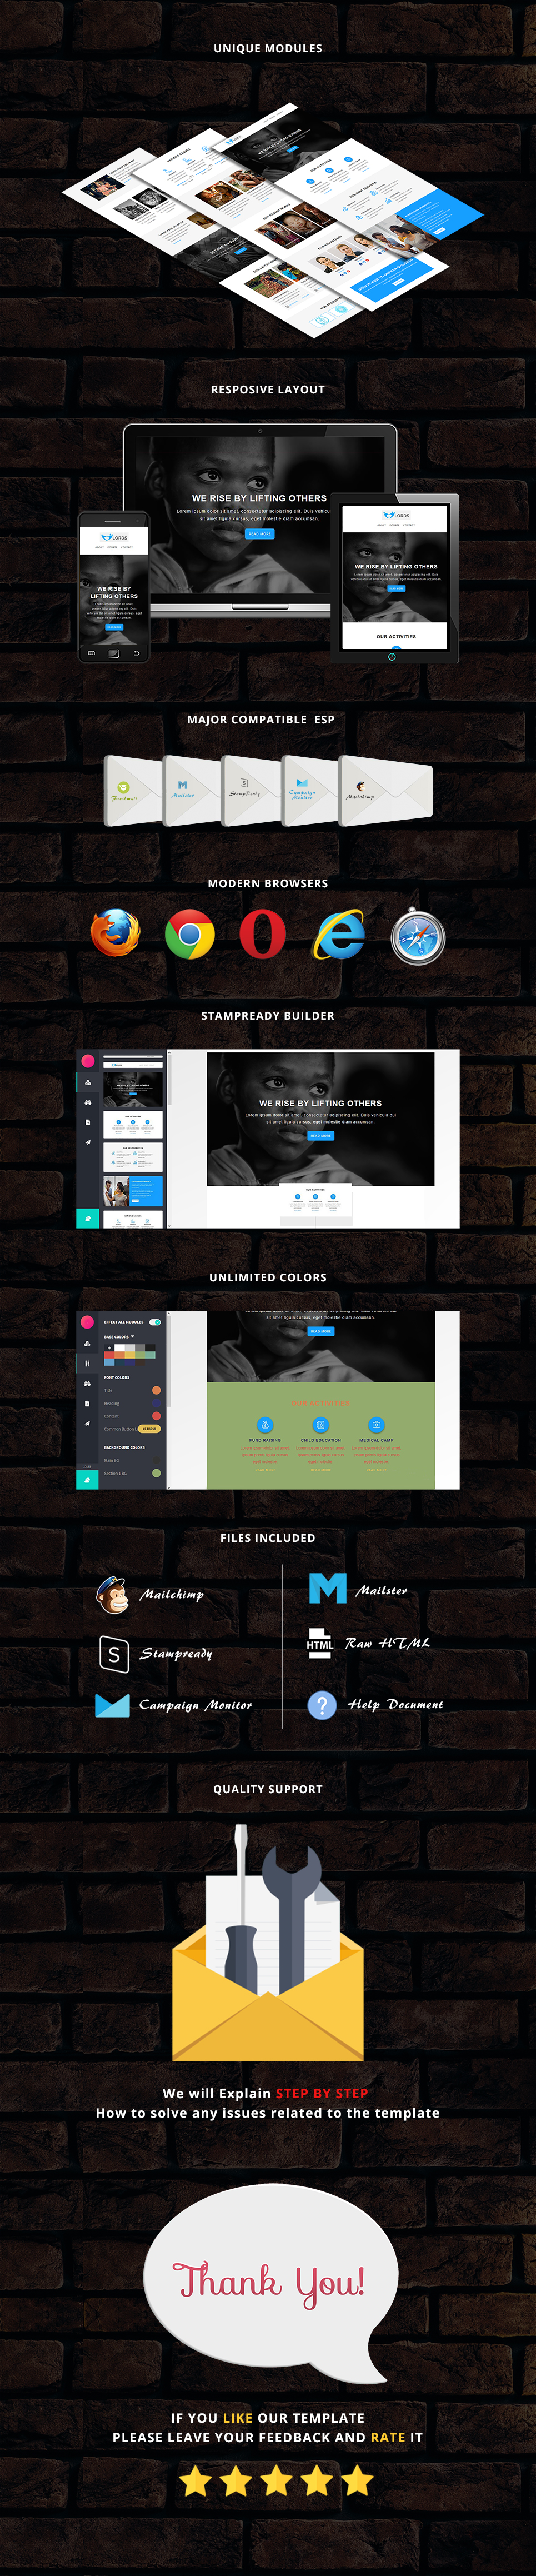 Lords - Responsive Email Template + Stampready Builder